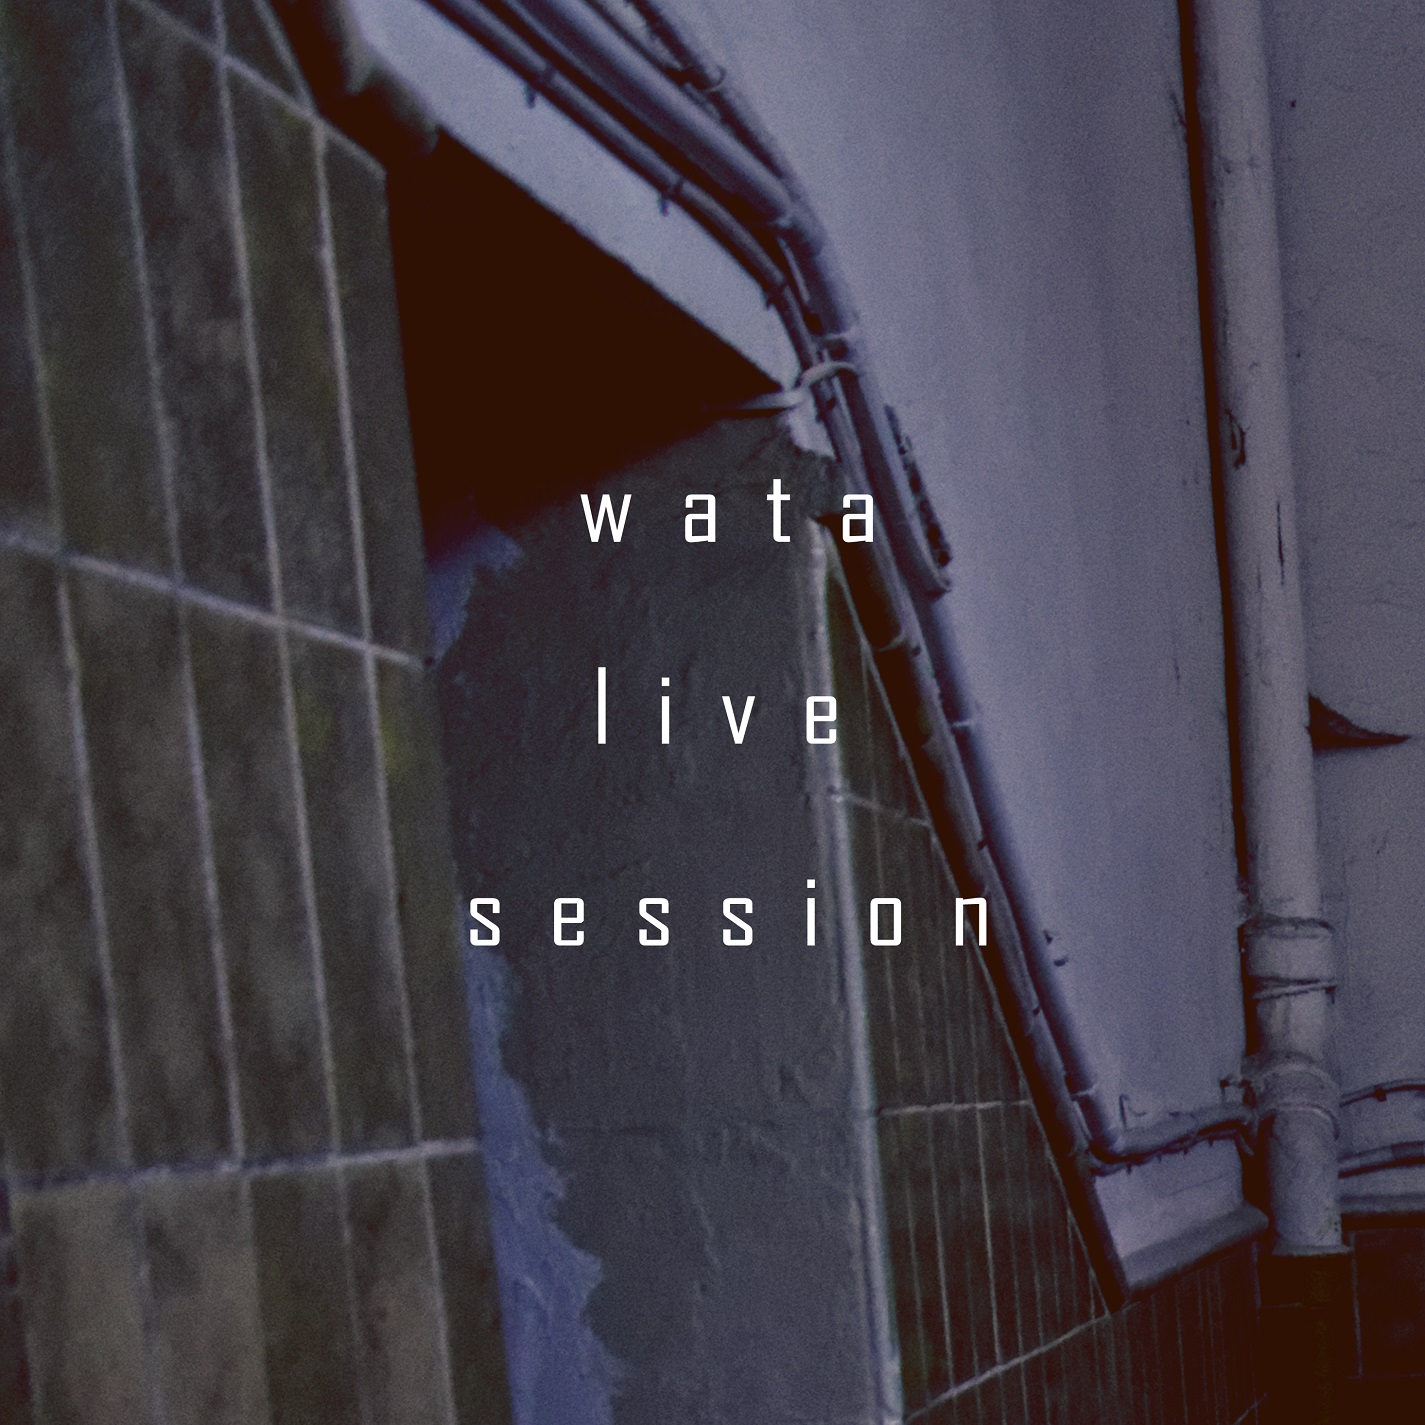 wata live session